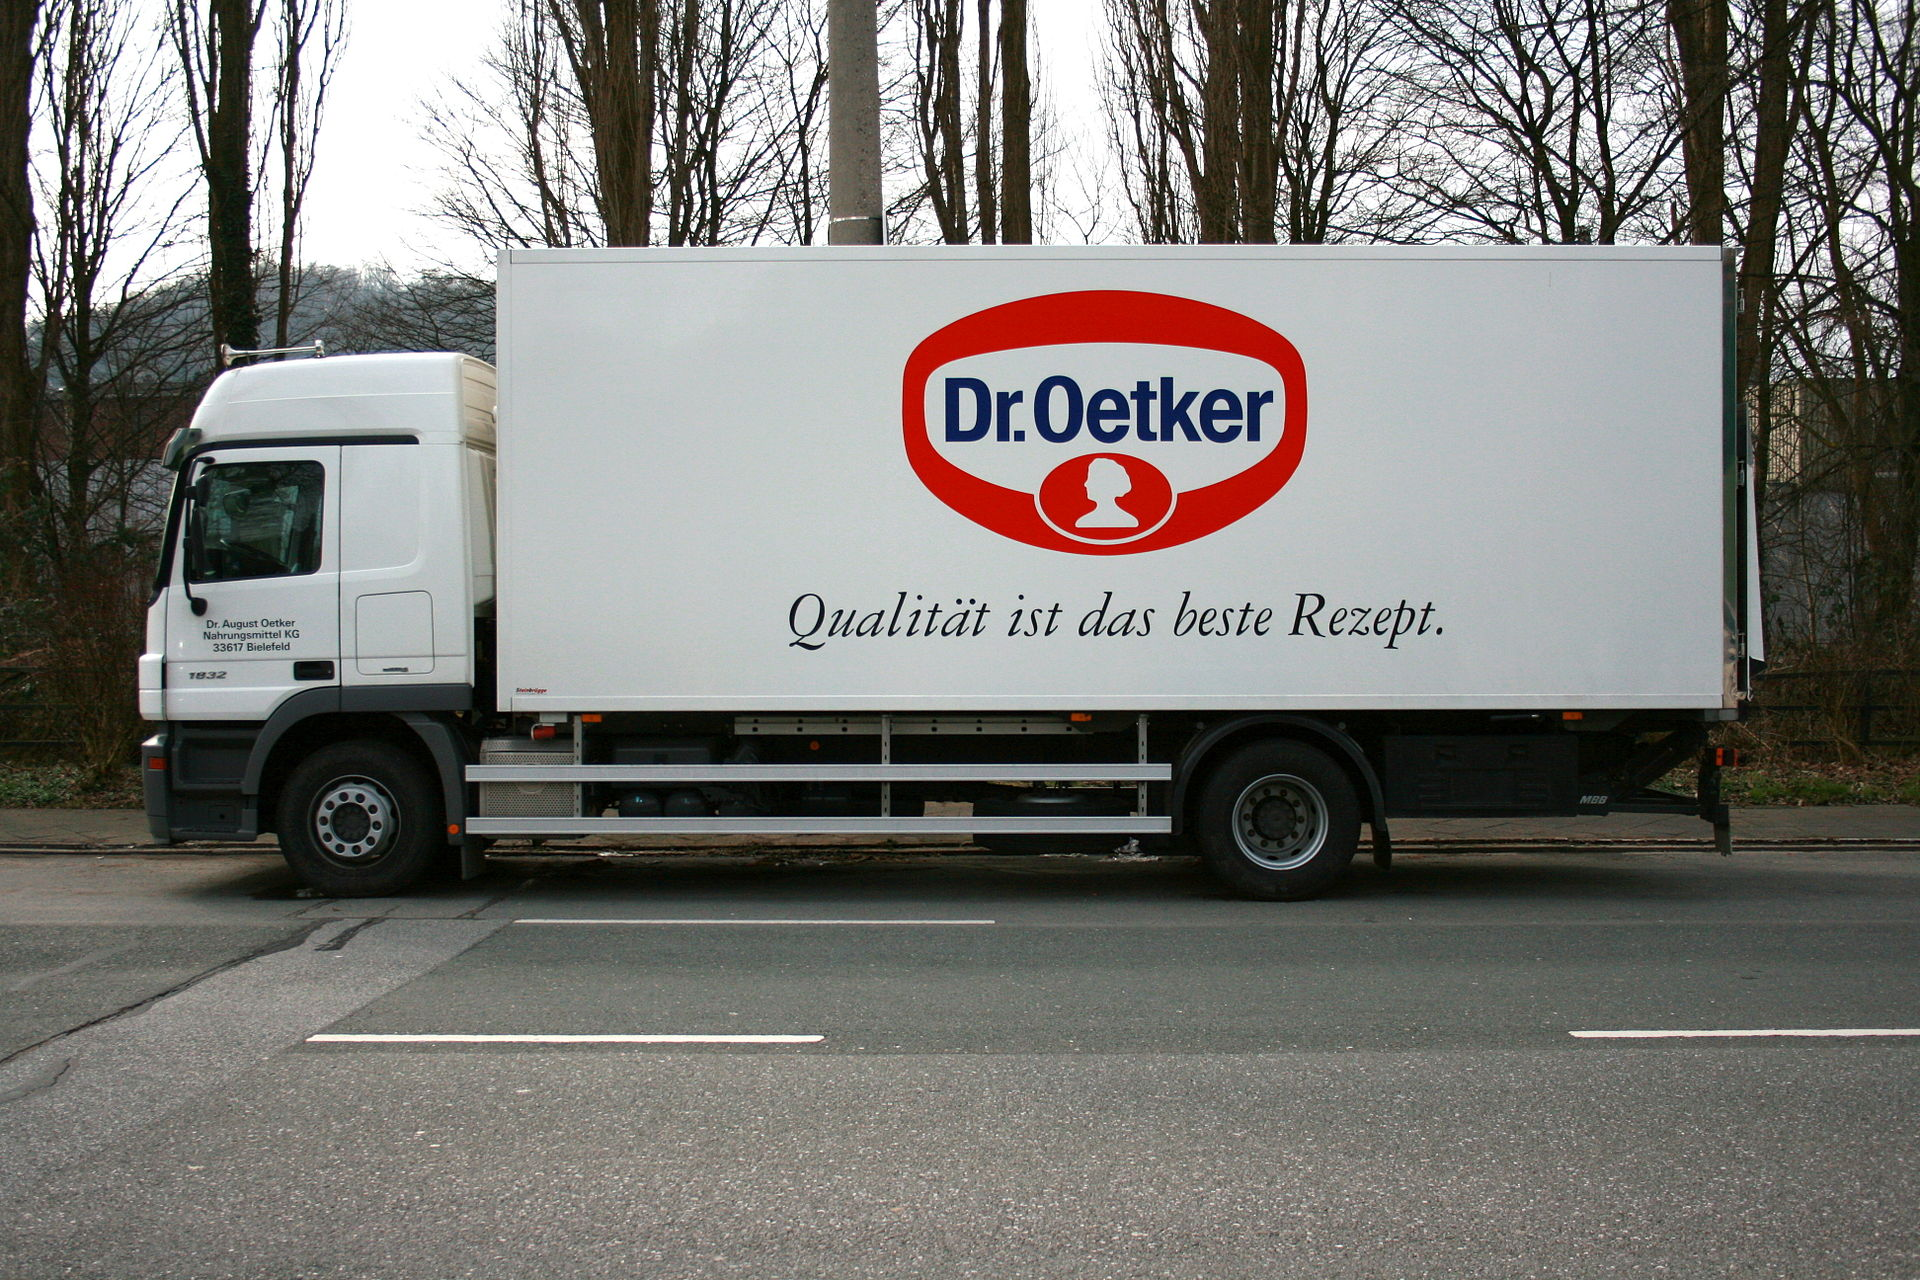 Dr august oetker kg wikipedia for Rauental 24 wuppertal